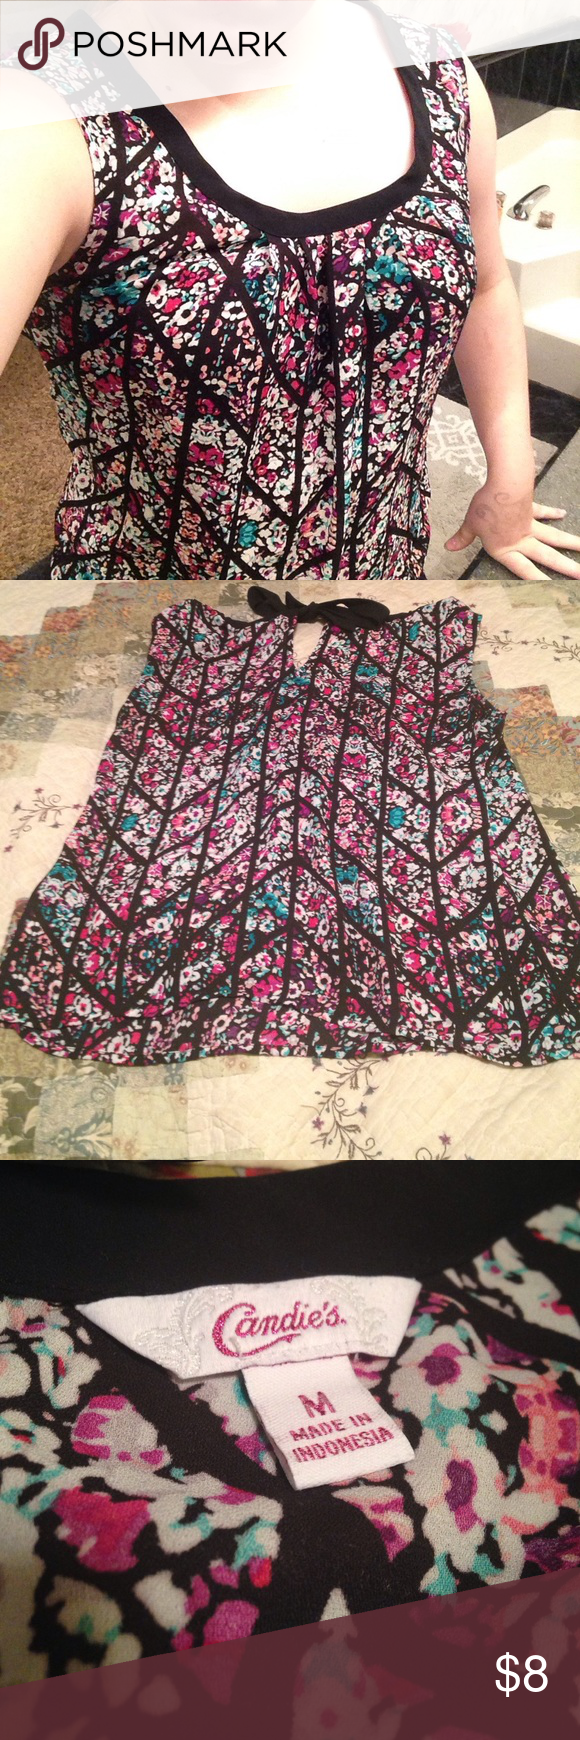 Gorgeous floral blouse. Size medium Floral blouse, with a bow at the nape of the neck on the back. It has been worn around two times. It is in great condition, practically no wear. Vibrant colors. The fabric is not stretchy. The tie at the back does allow for adjustment in the neck line though. Gorgeous, the pictures do not do it justice! The brand is candies. Candie's Tops Blouses